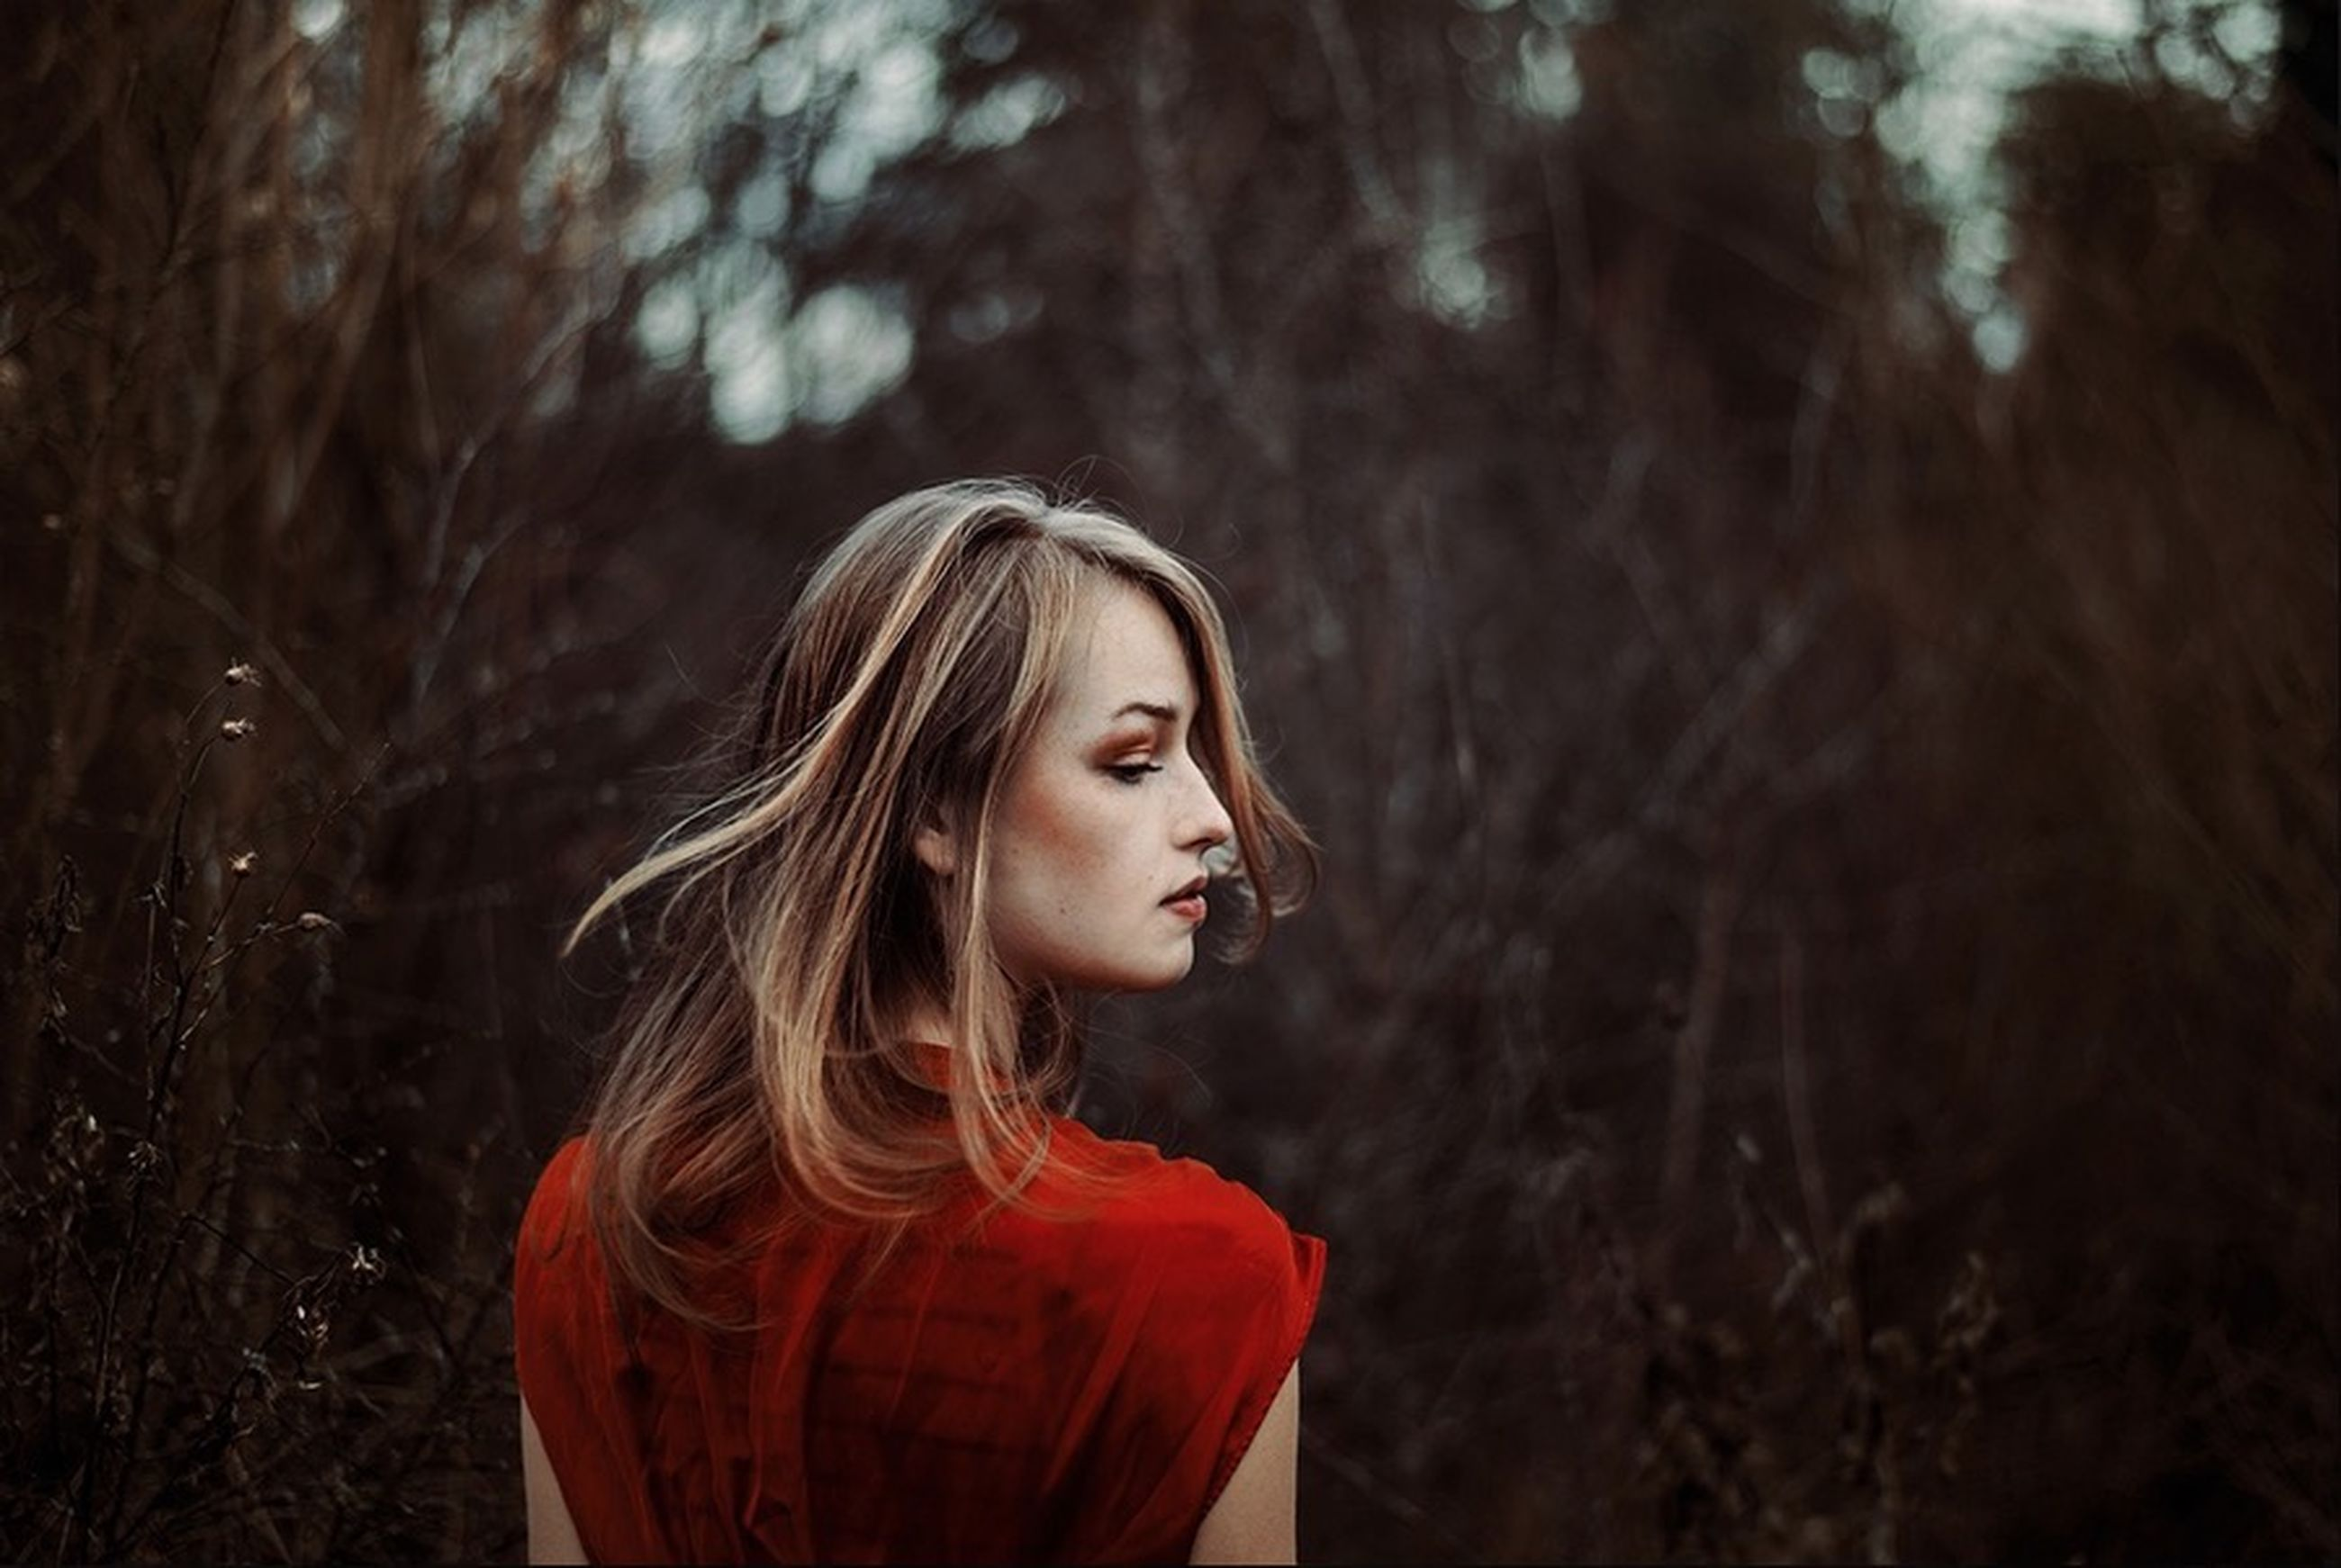 young adult, long hair, young women, lifestyles, person, leisure activity, looking at camera, portrait, forest, tree, front view, focus on foreground, brown hair, headshot, standing, casual clothing, waist up